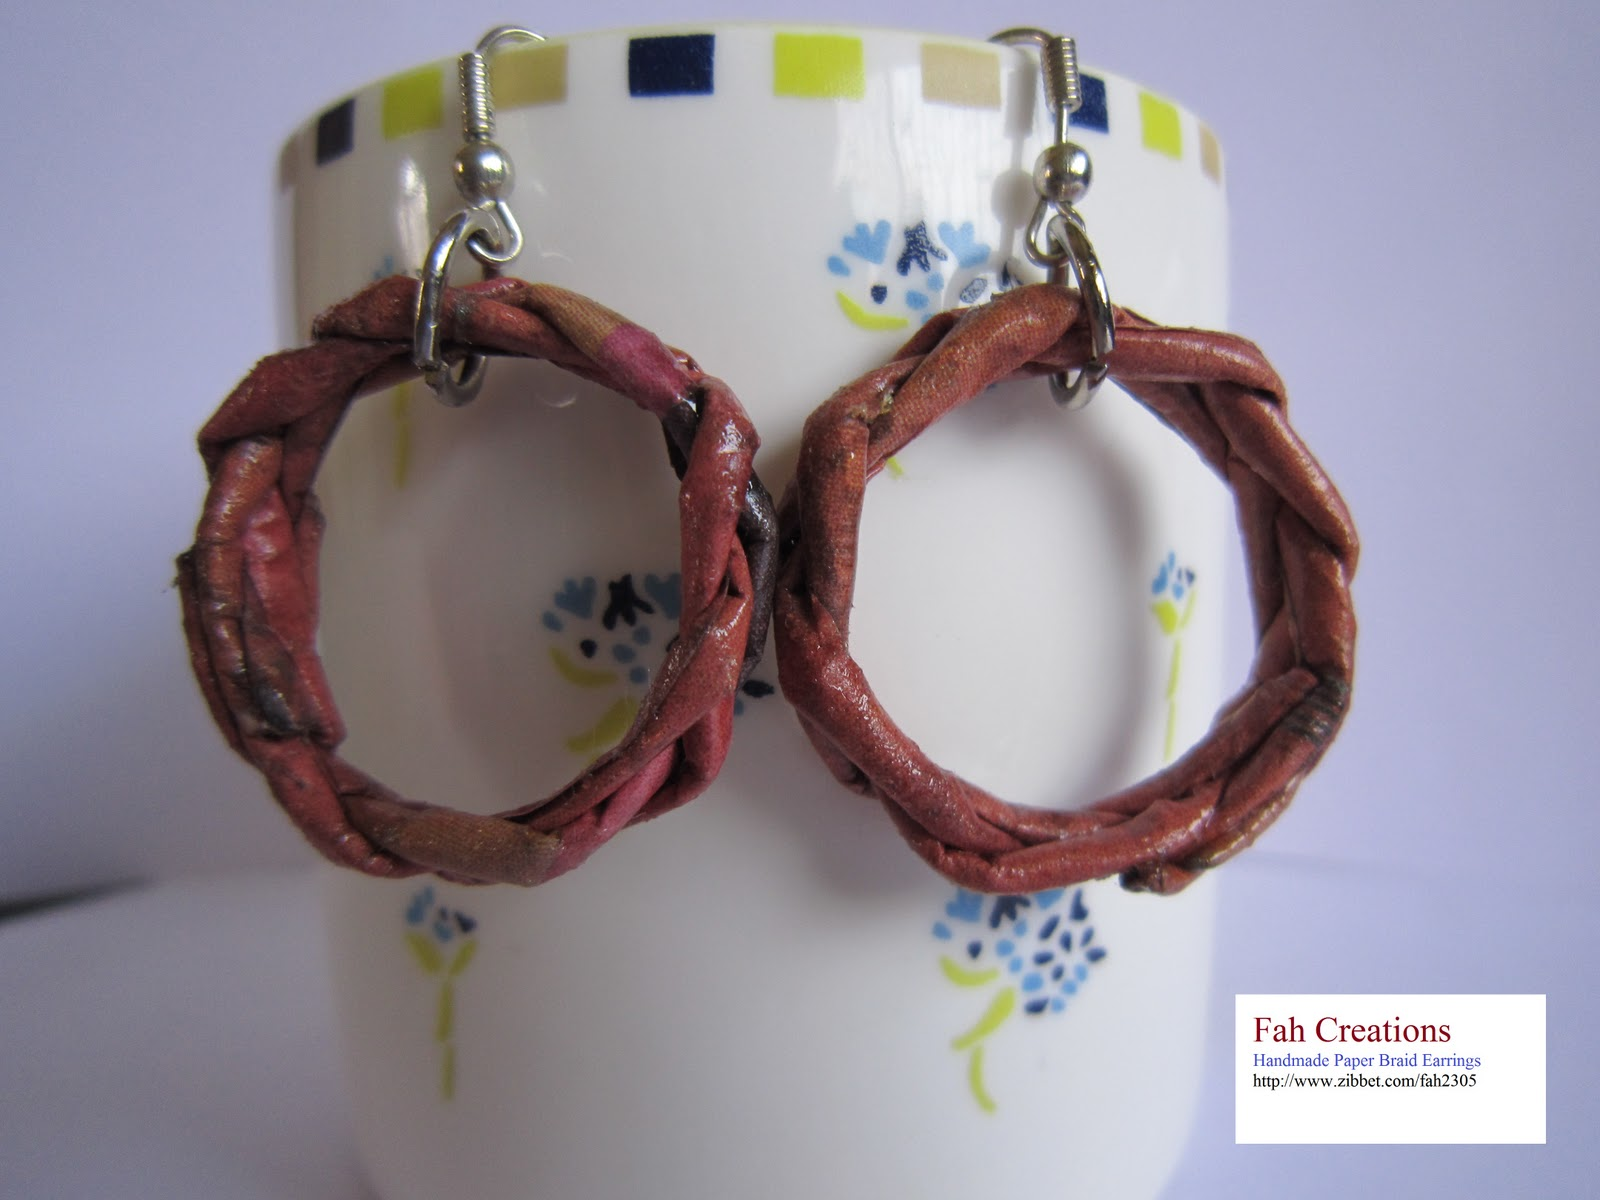 http://1.bp.blogspot.com/-0nkorjIl9e0/TpLsYFIIpnI/AAAAAAAAAG8/Hqw9msrg4Pg/s1600/Handmade+Rolled+Paper+Braid+Earrings.jpg